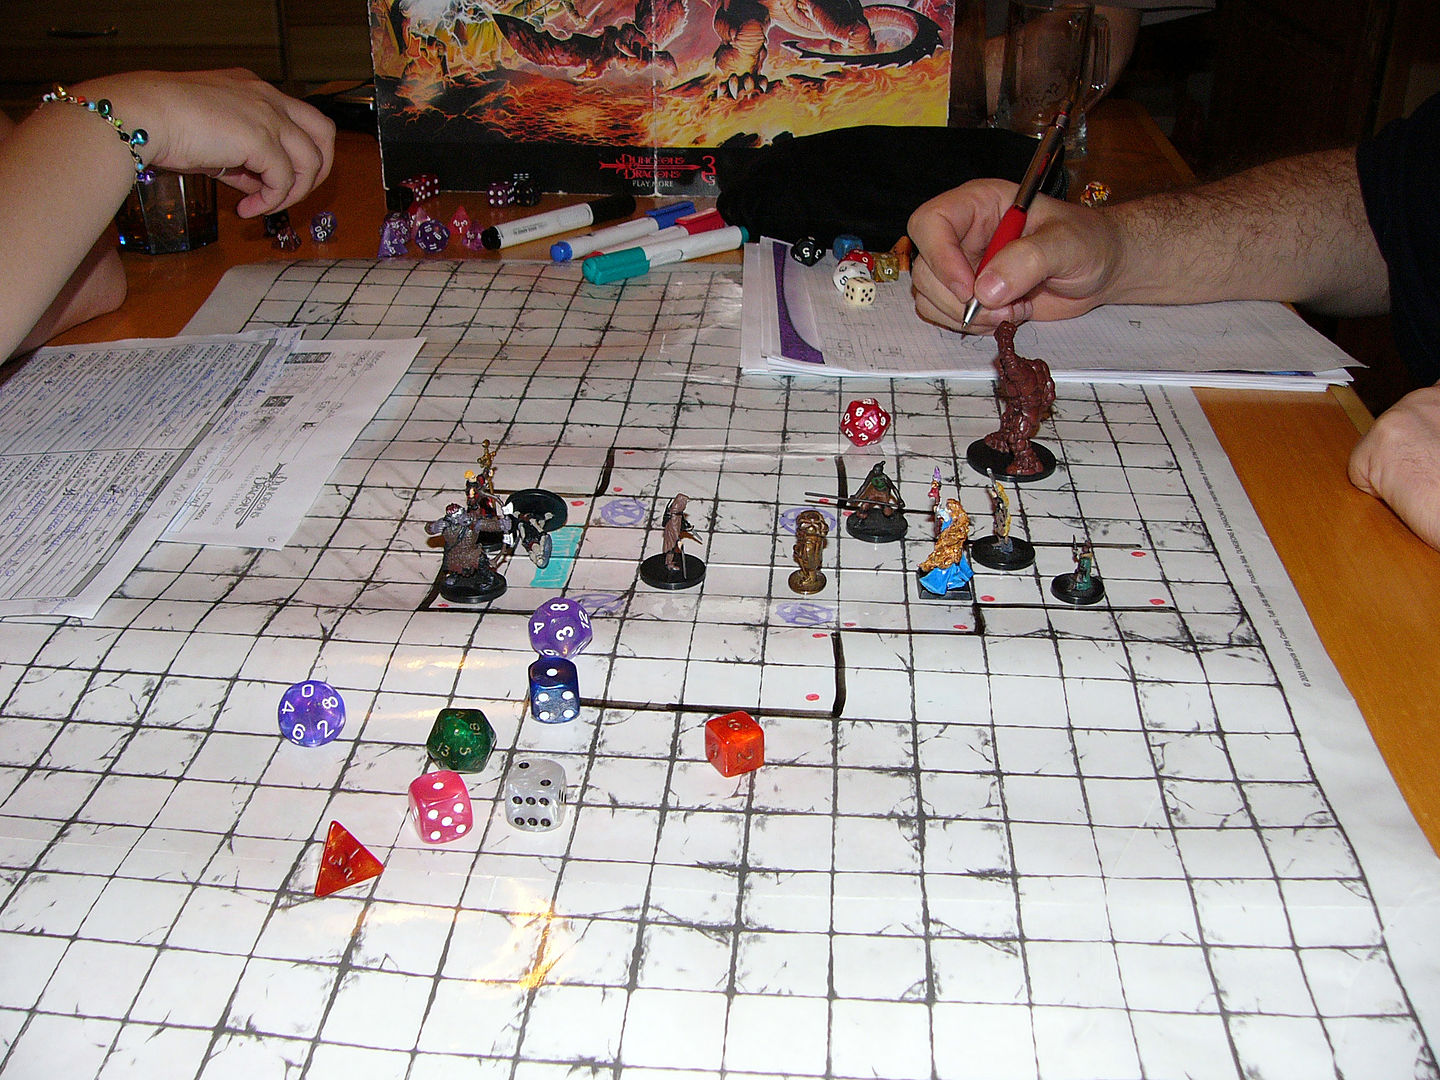 1440px-Dungeons_and_Dragons_game